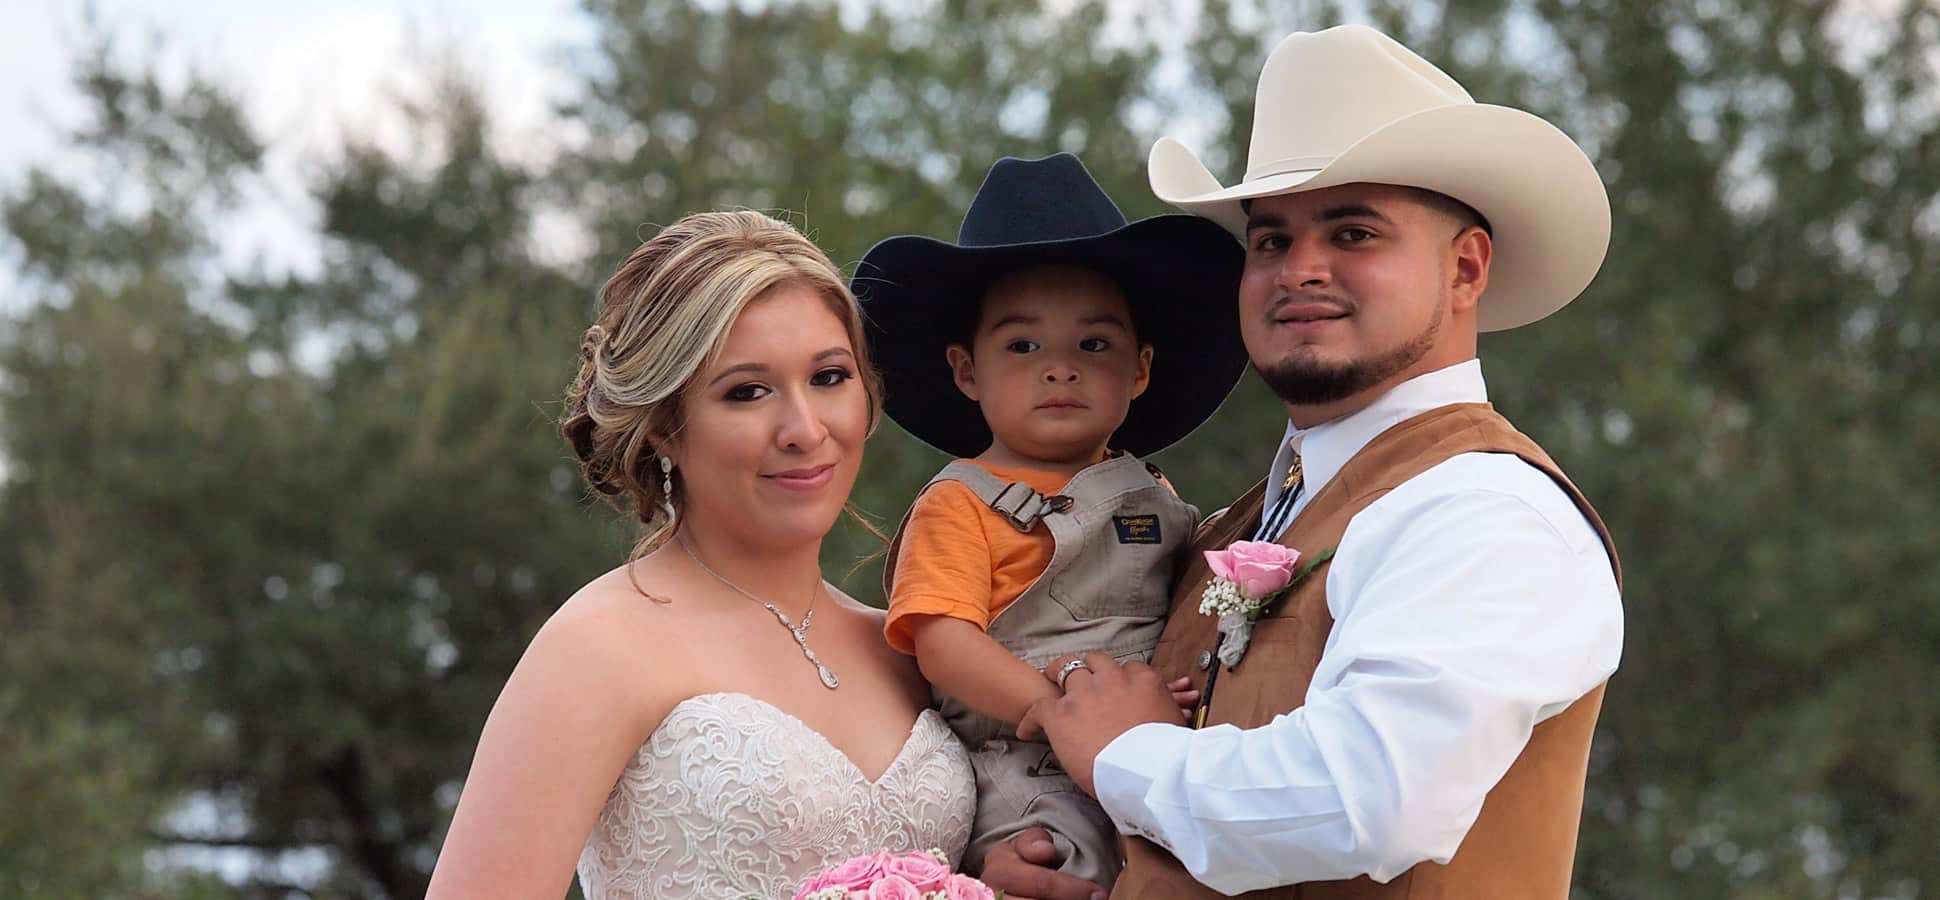 A couple holding a small child on the bride at BlissWood Ranch wedding venue